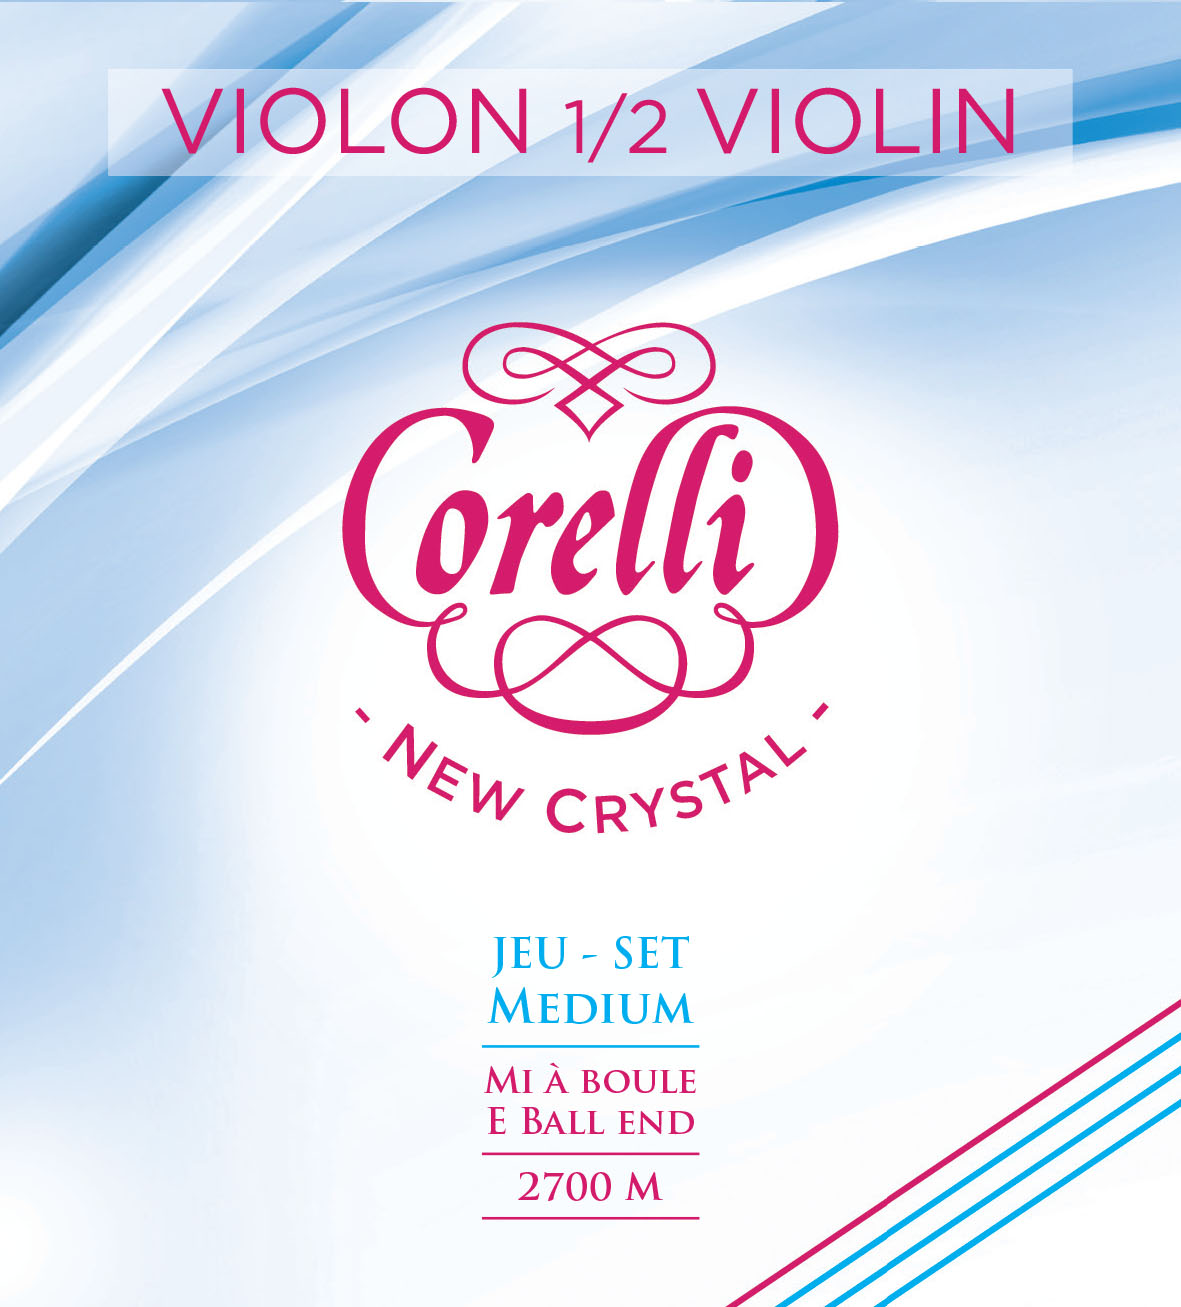 CORELLI NEW CRYSTAL MEDIUM 2700M VIOLON 1/2